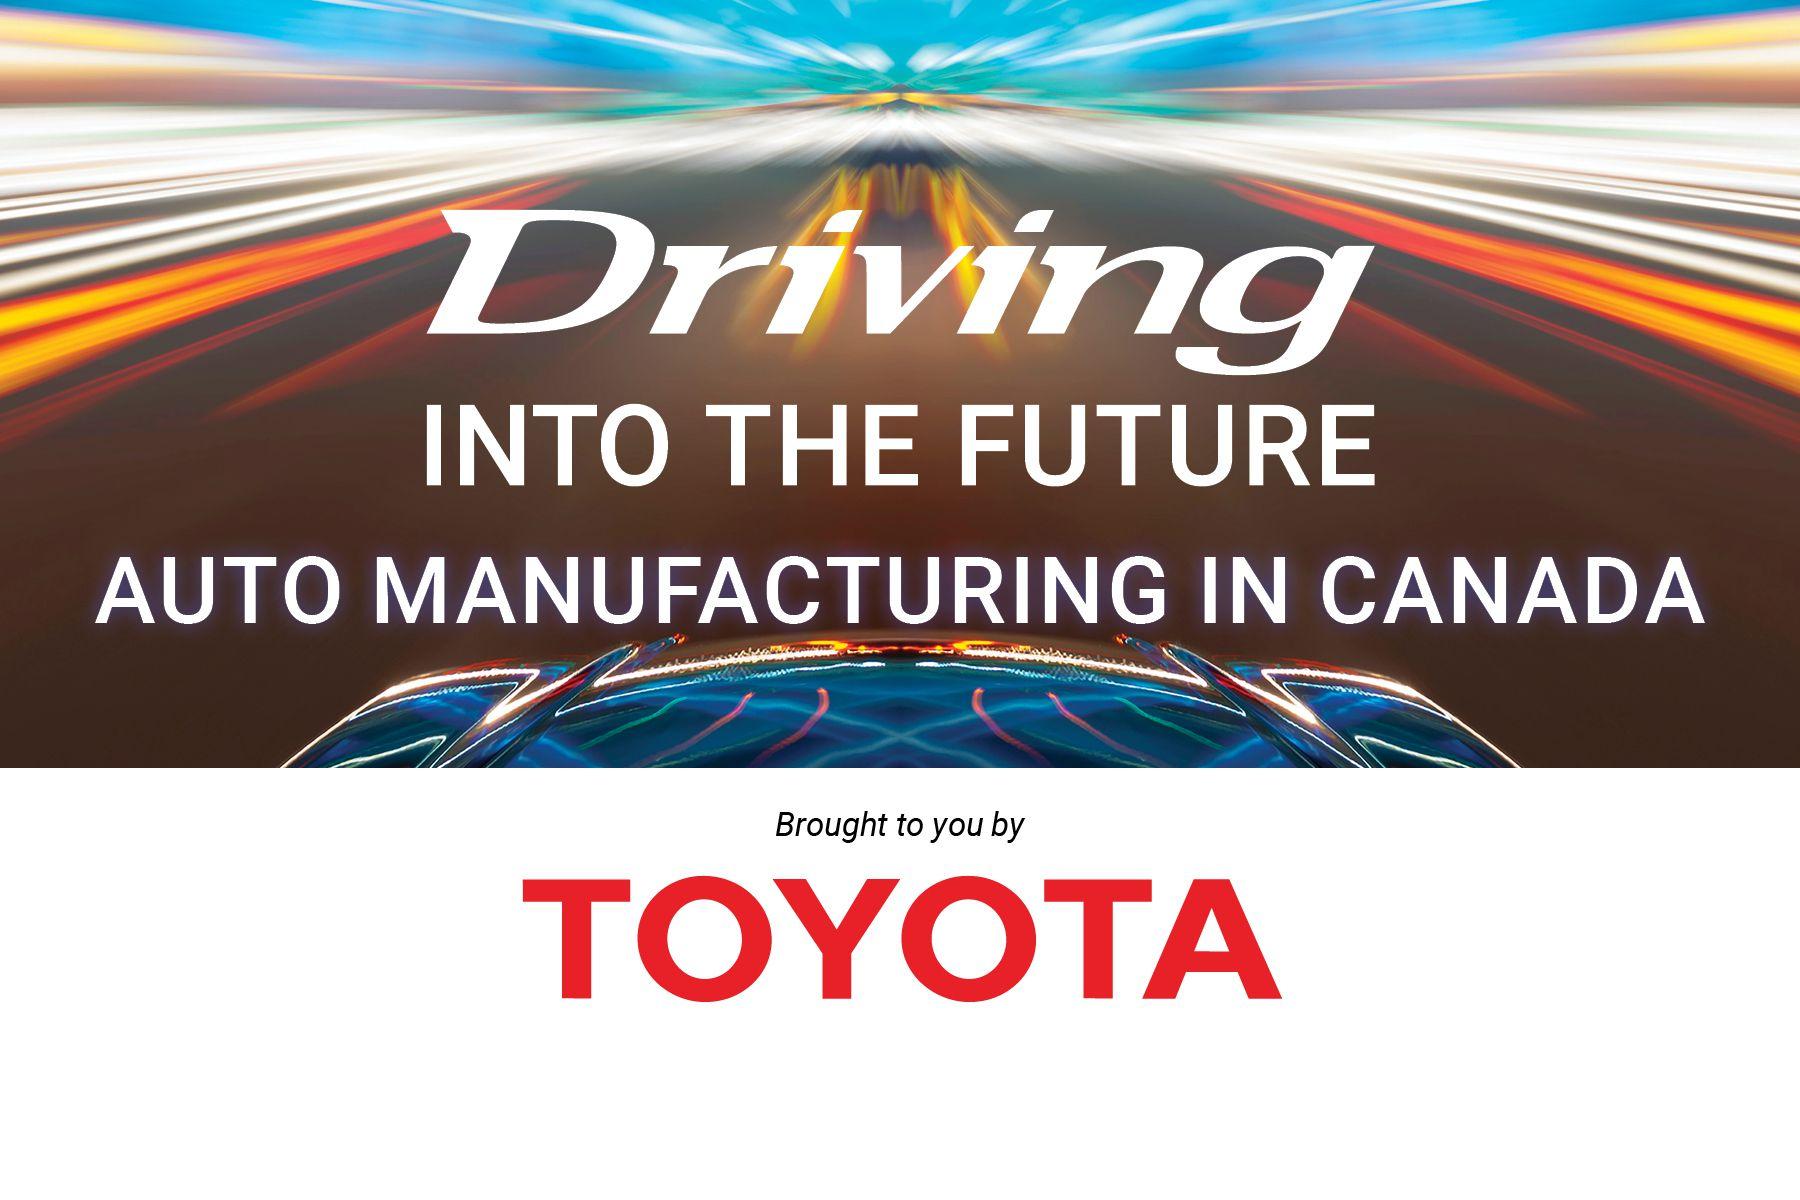 21-07 Driving.ca DrivingFuture #3 Mar3_LeadImage1800x1200_R1